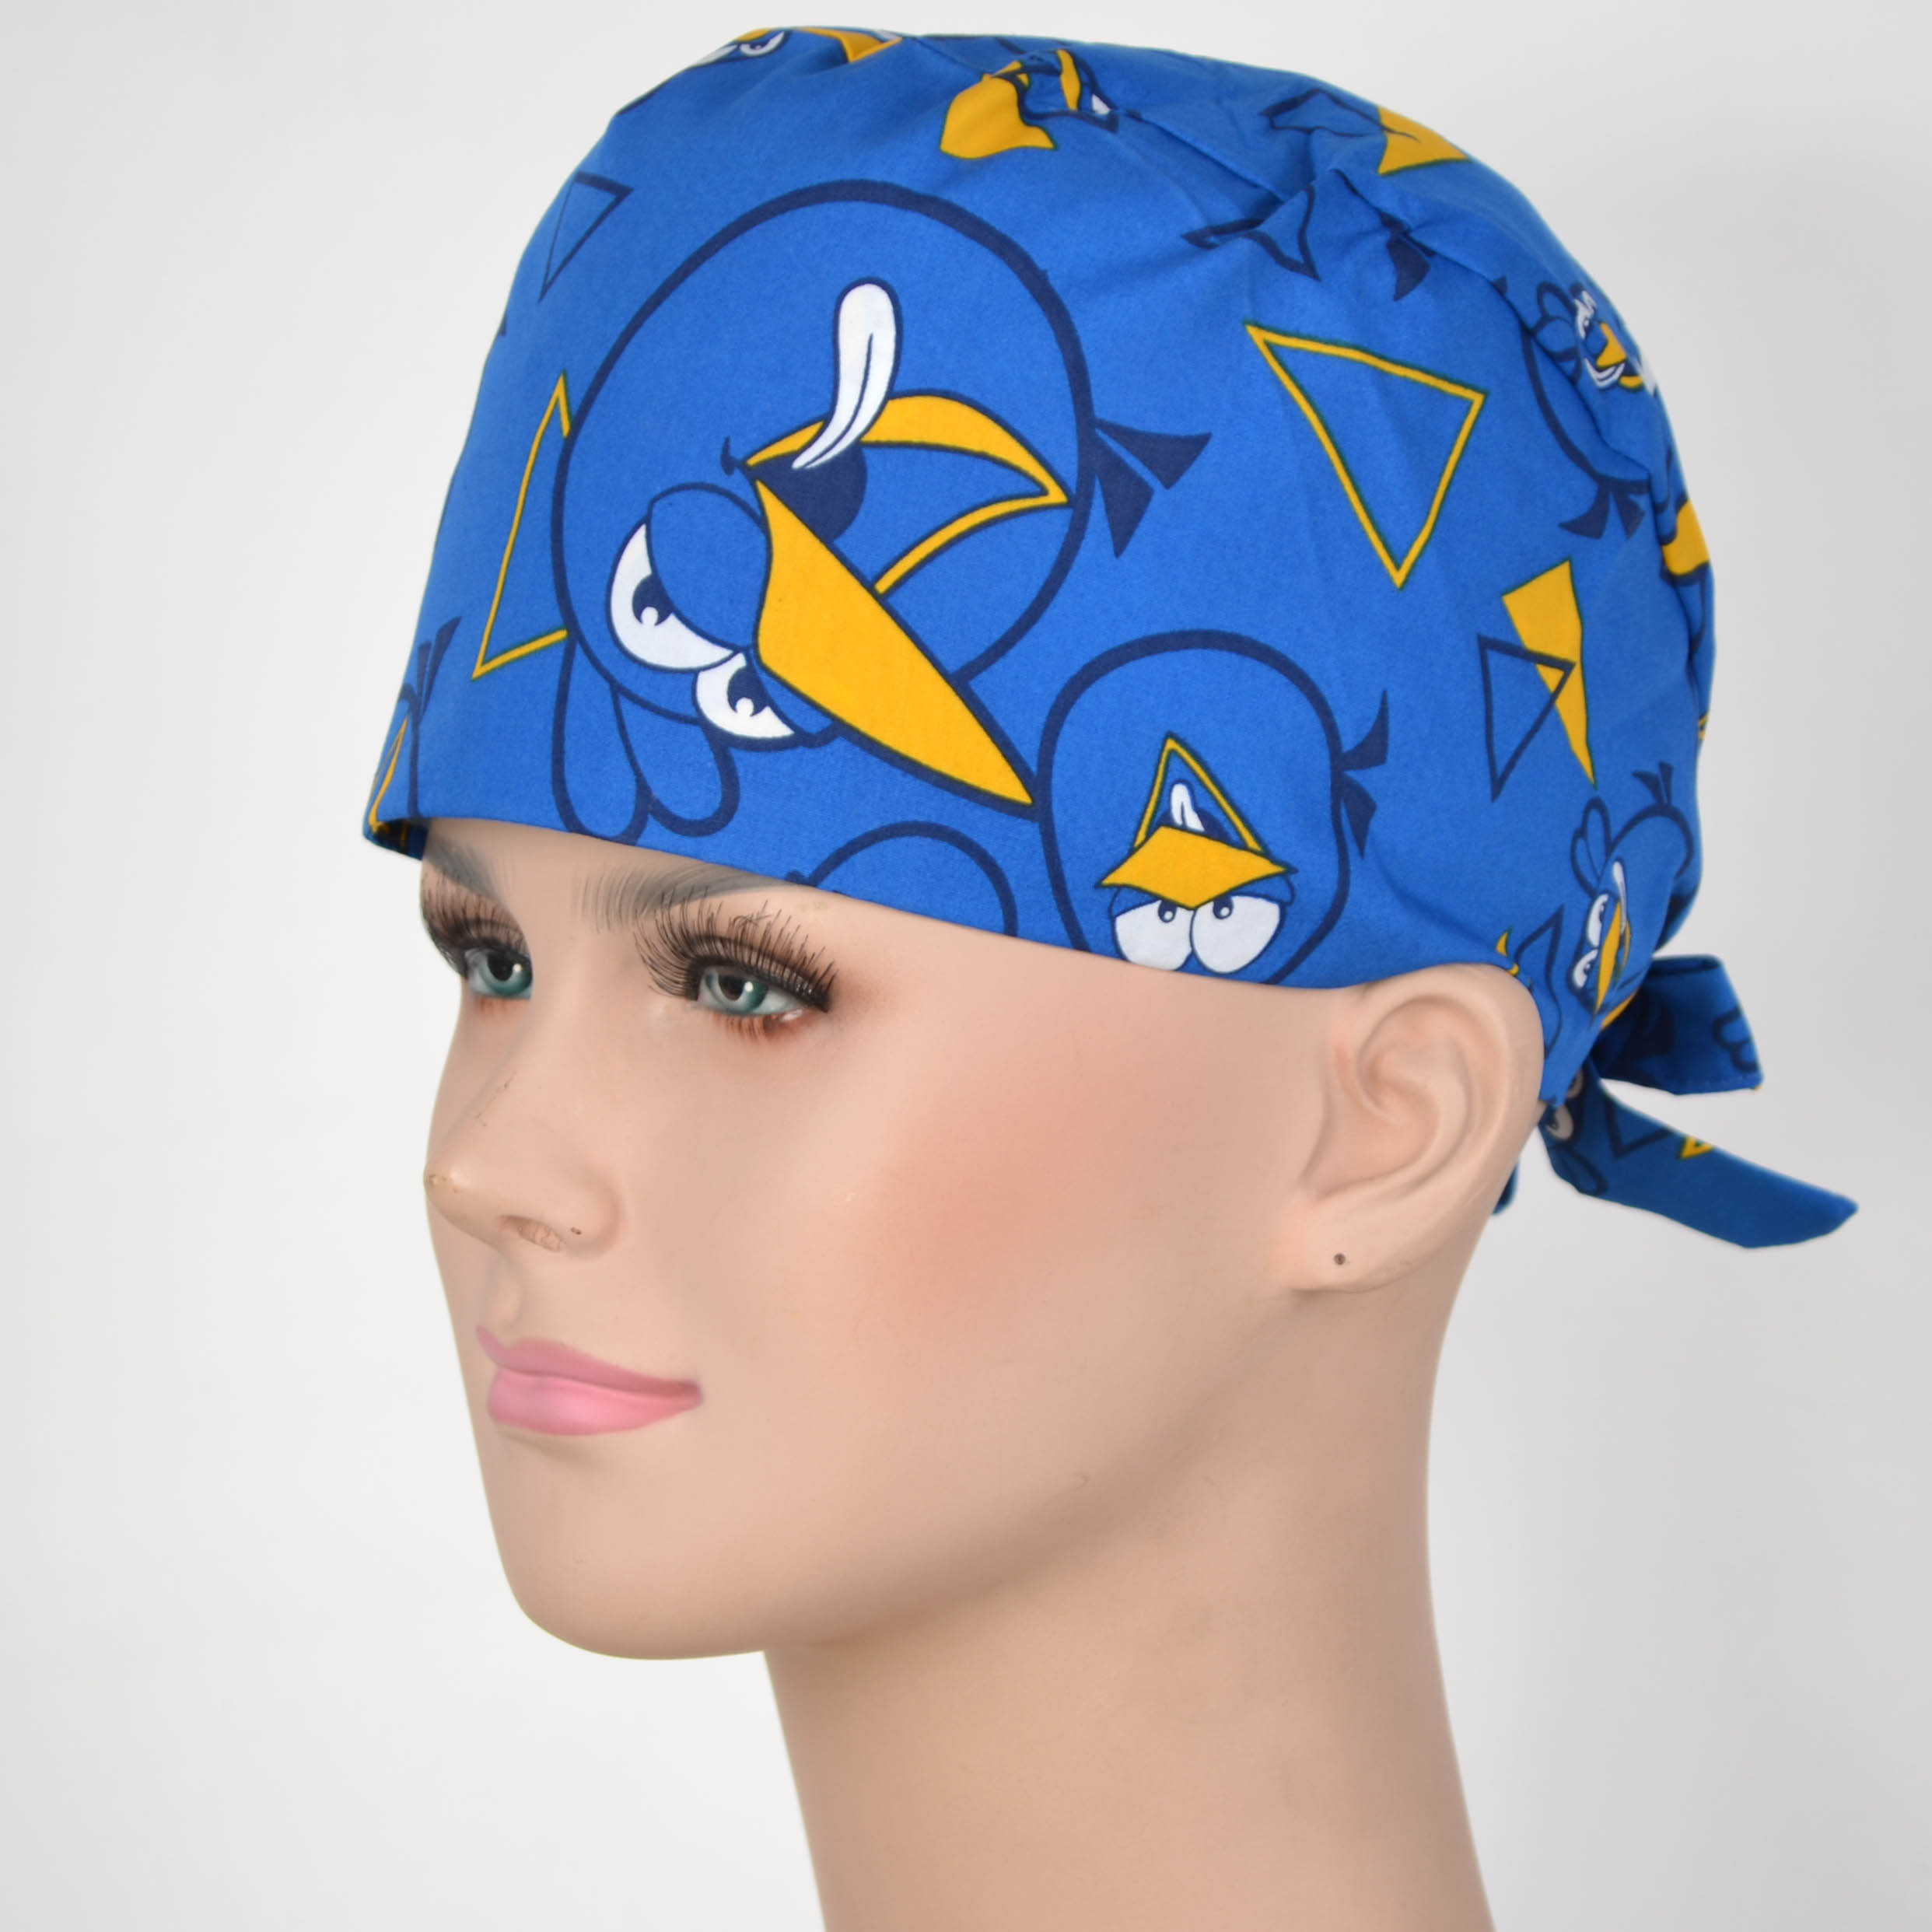 Surgical Caps In Blue